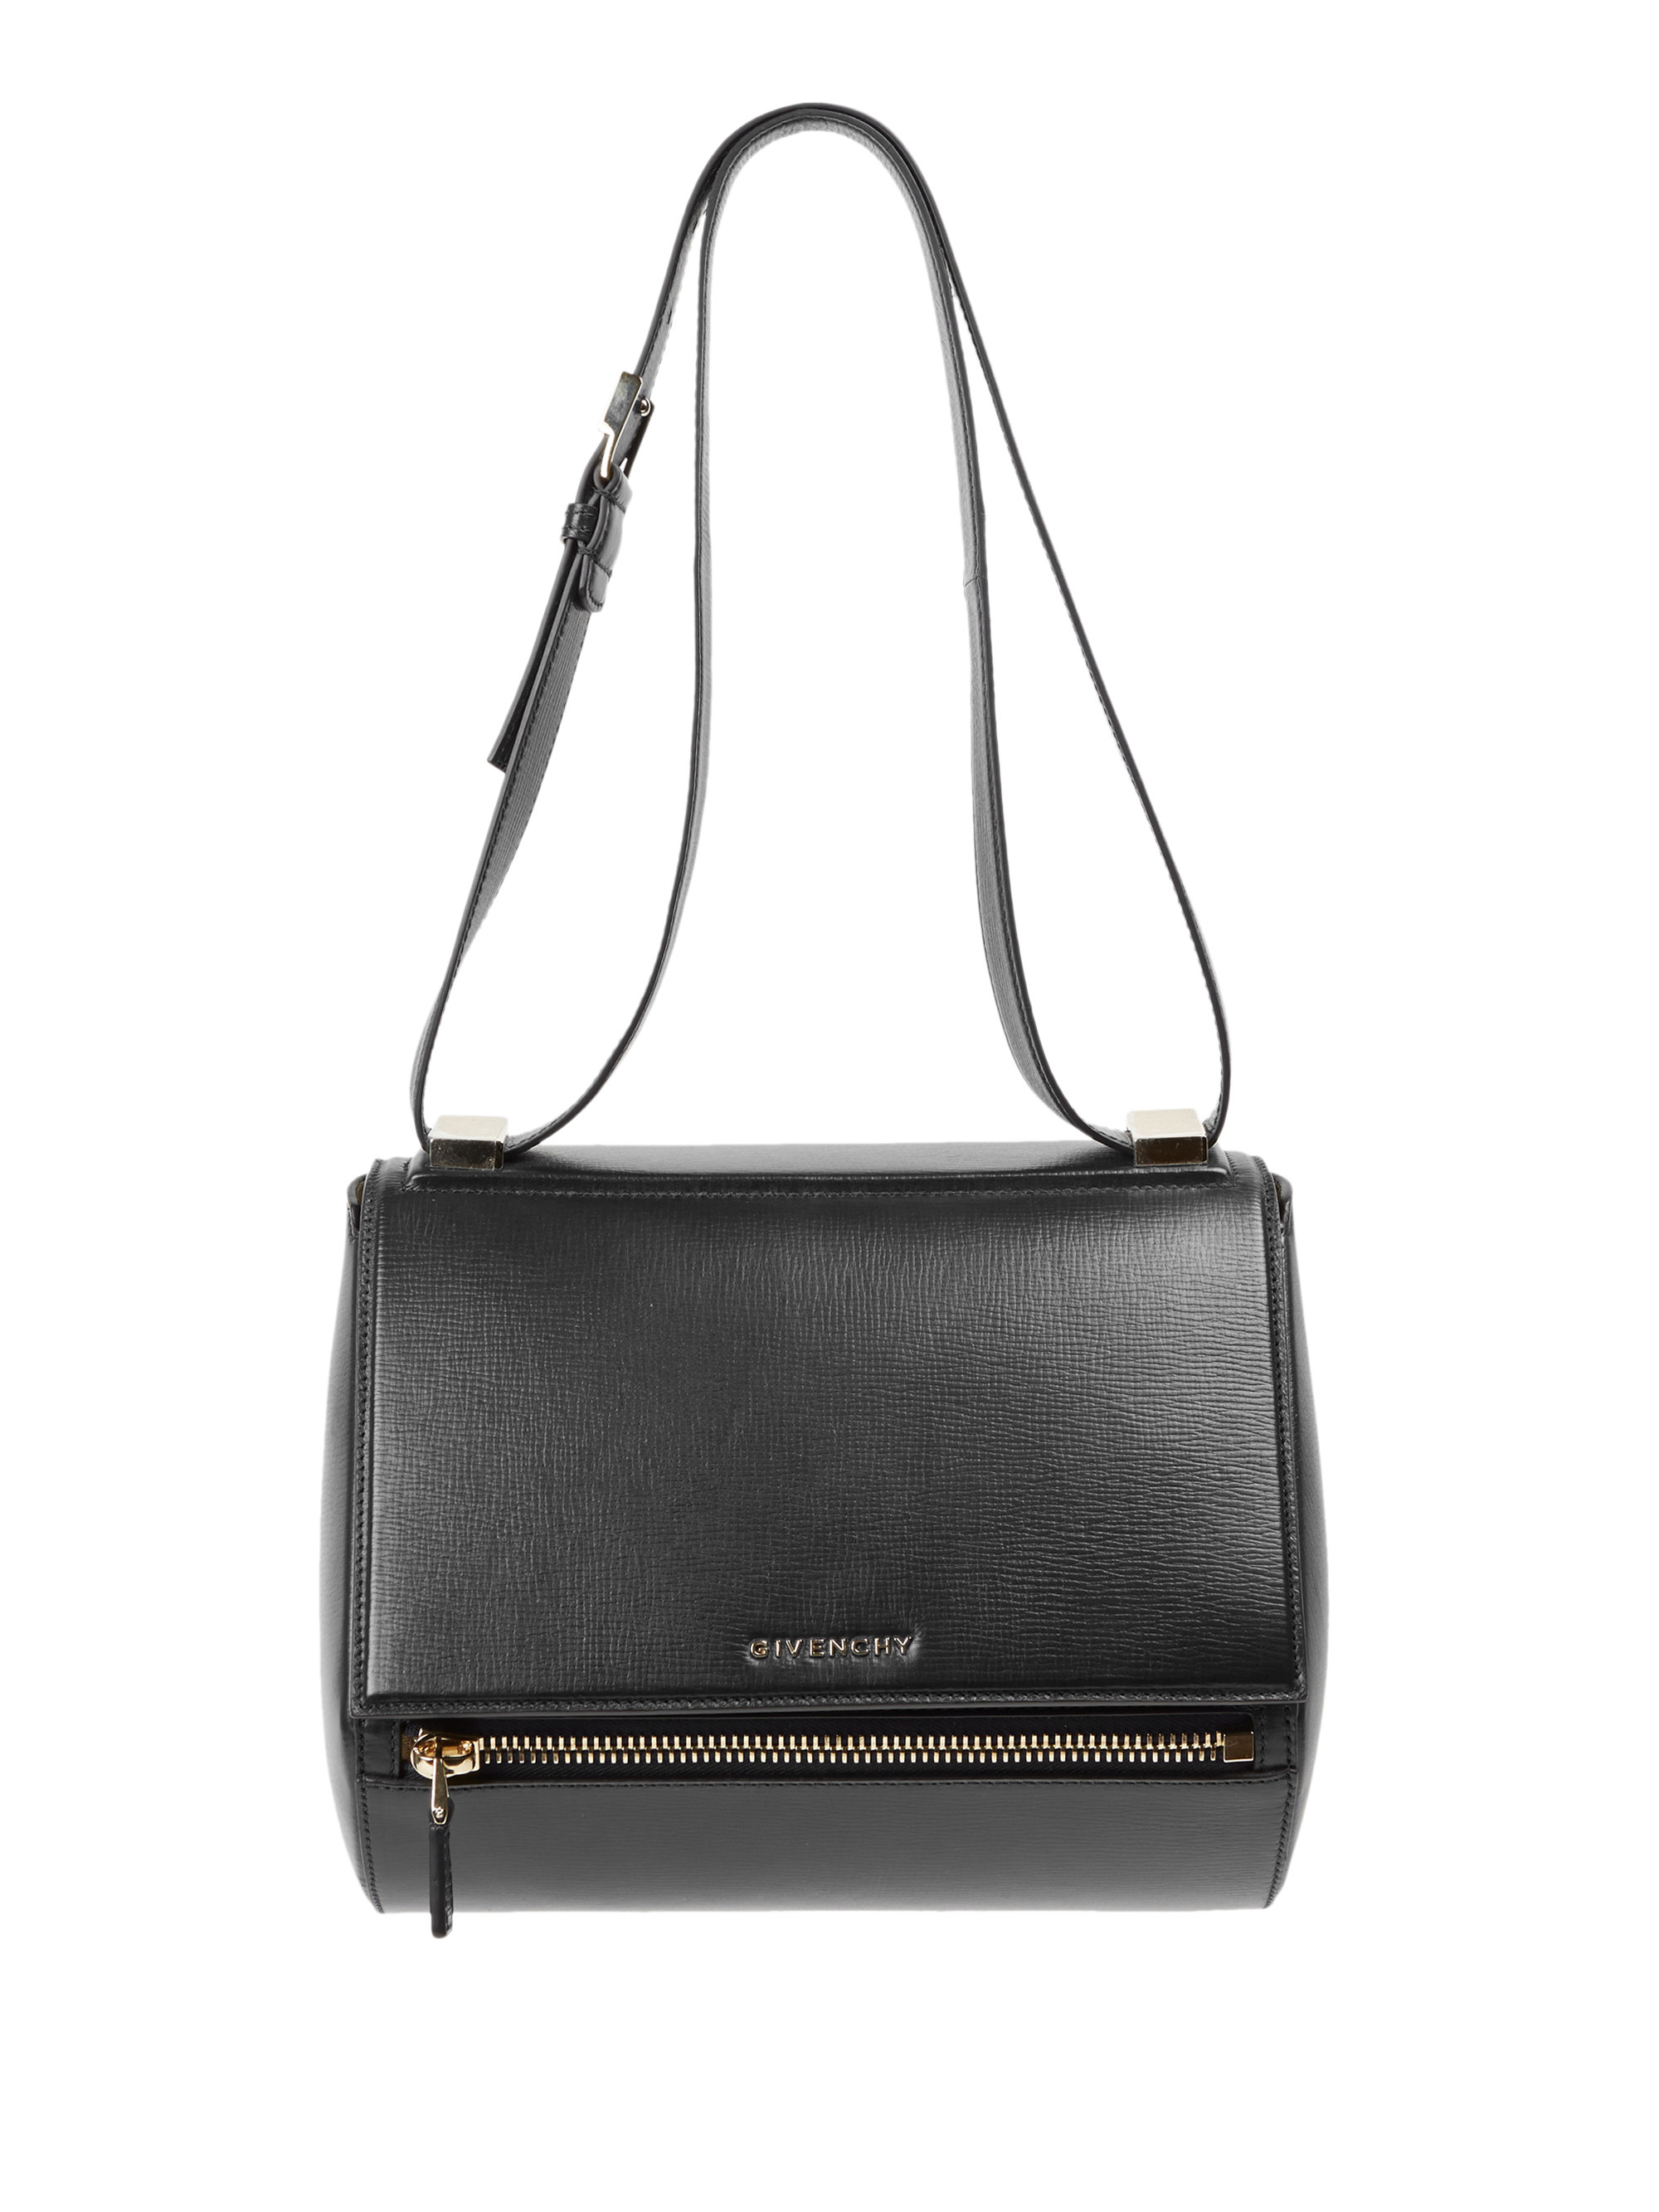 givenchy pandora box medium textured leather crossbody bag in black